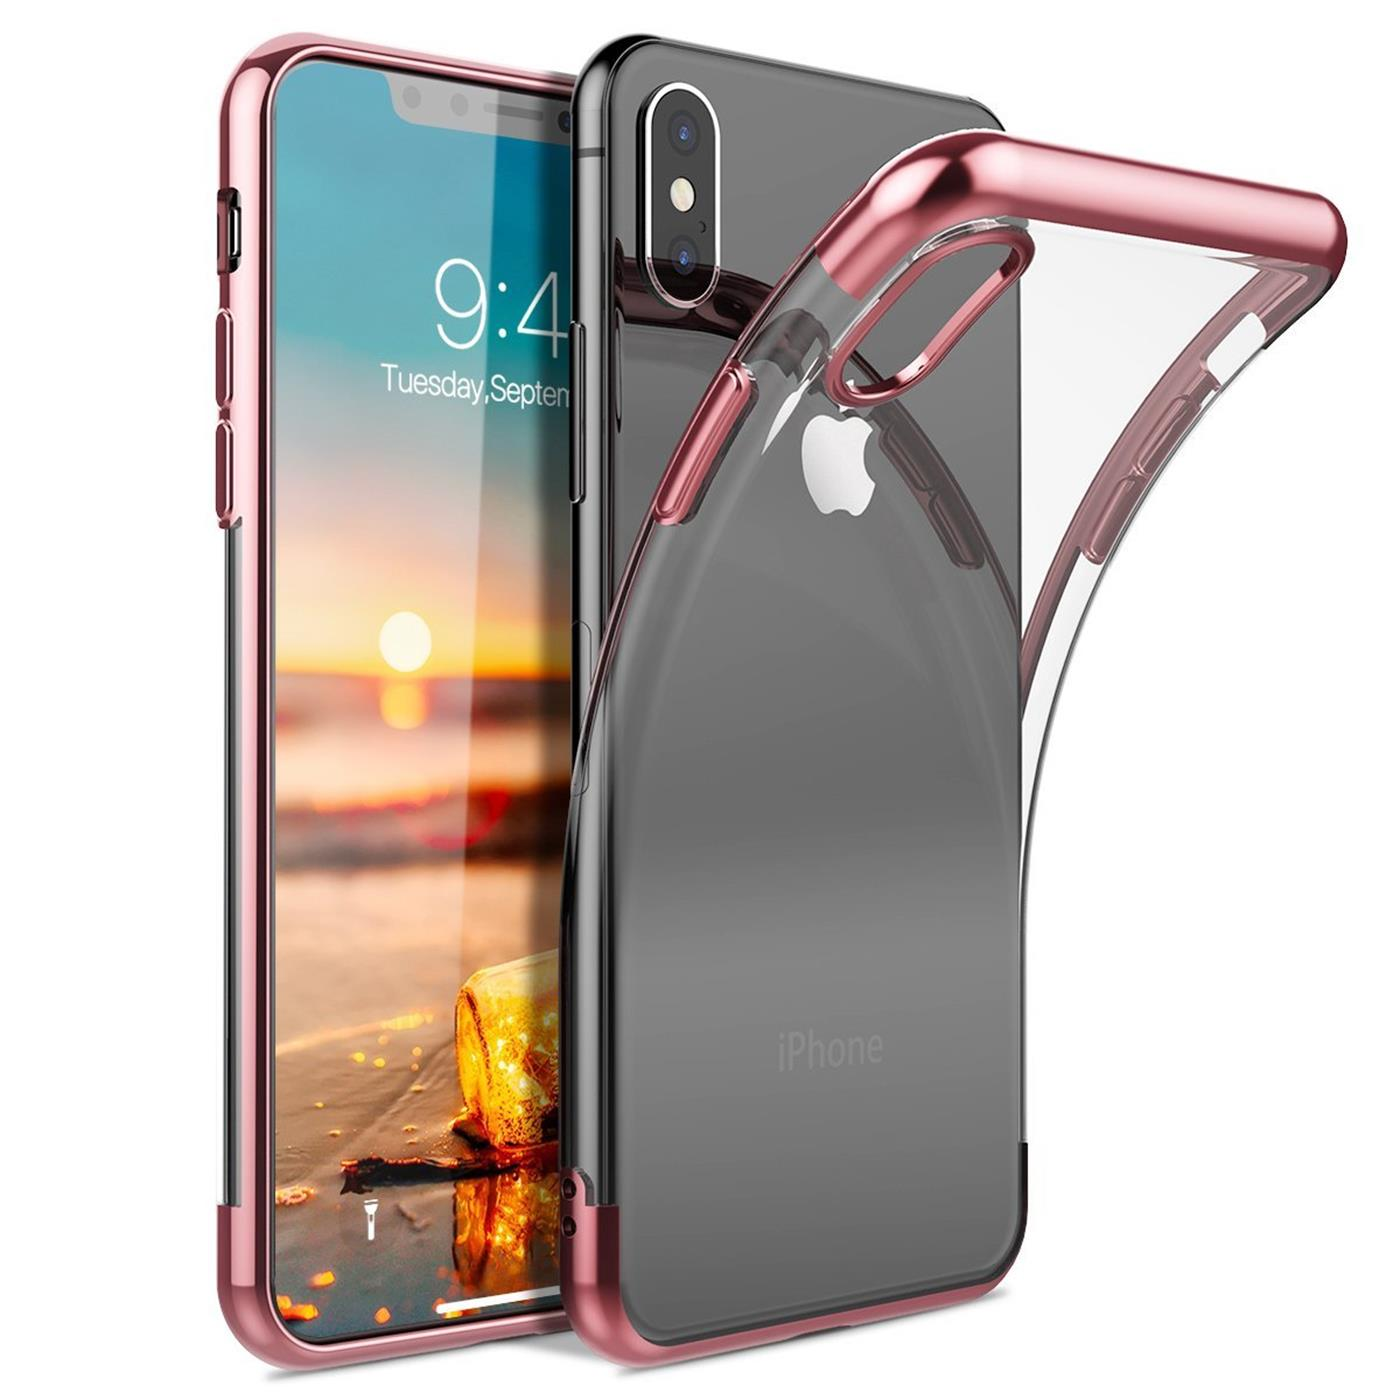 Schutzhuelle-Apple-iPhone-Slim-Glanz-Case-Handy-Cover-Huelle-Etui-Bumper-Tasche